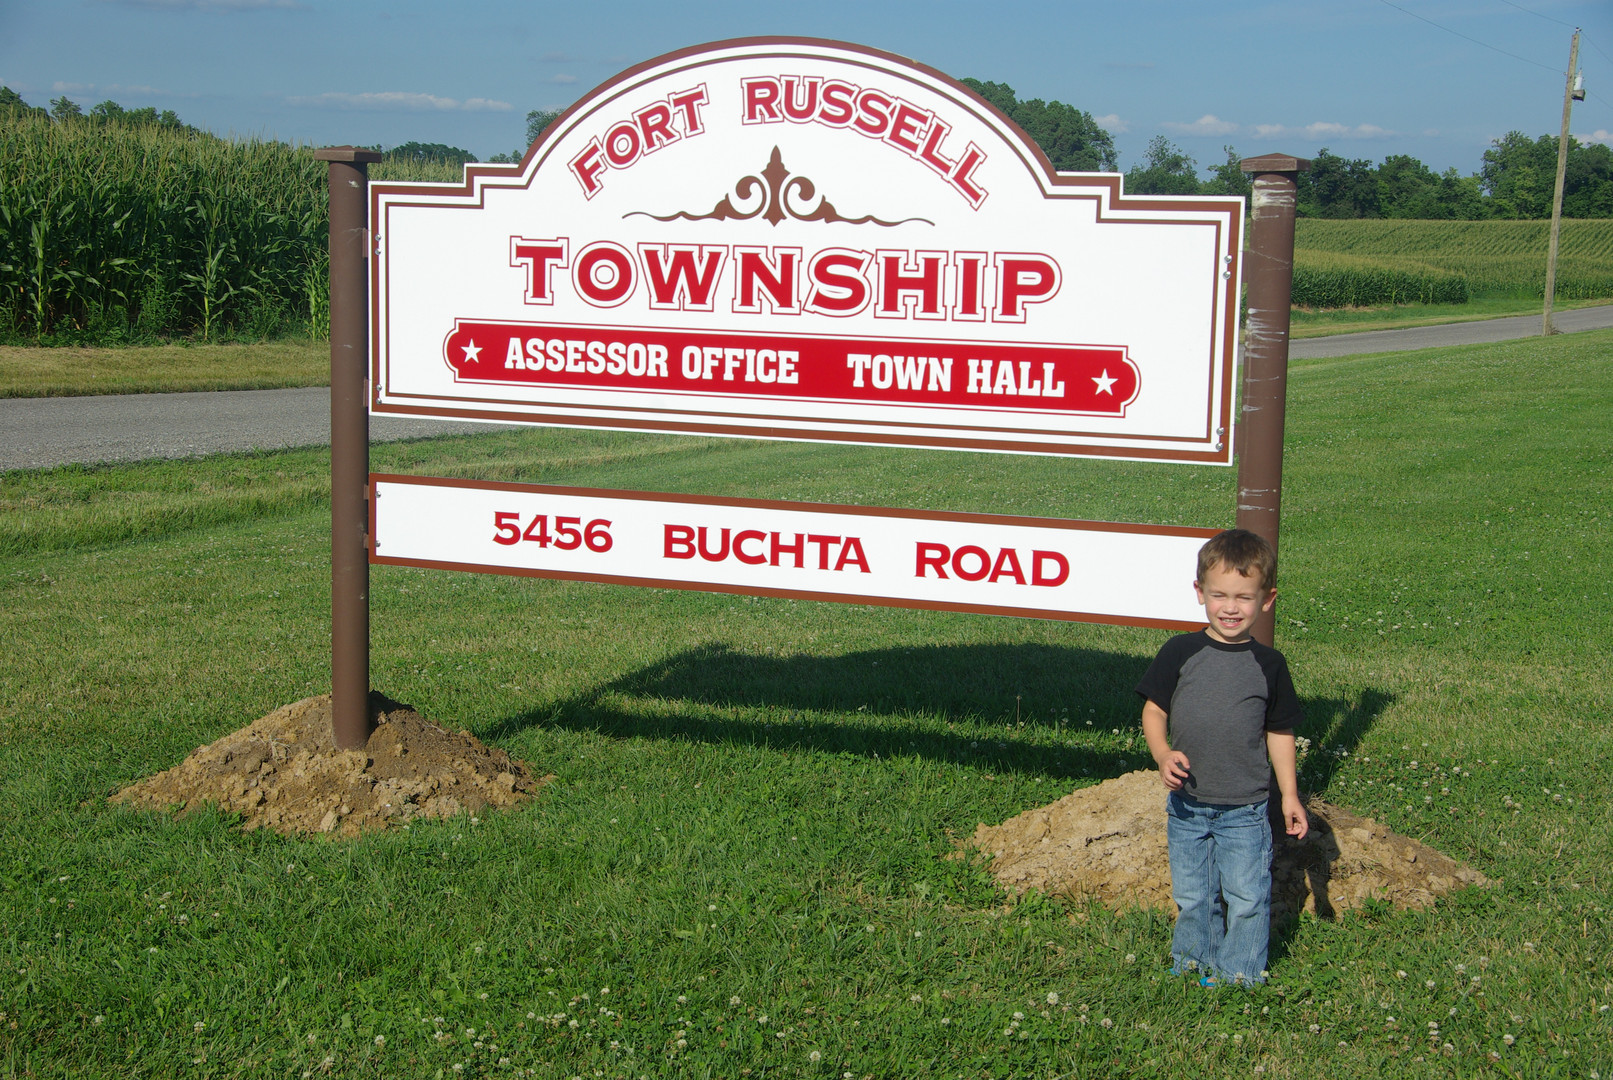 Fort Russell Township